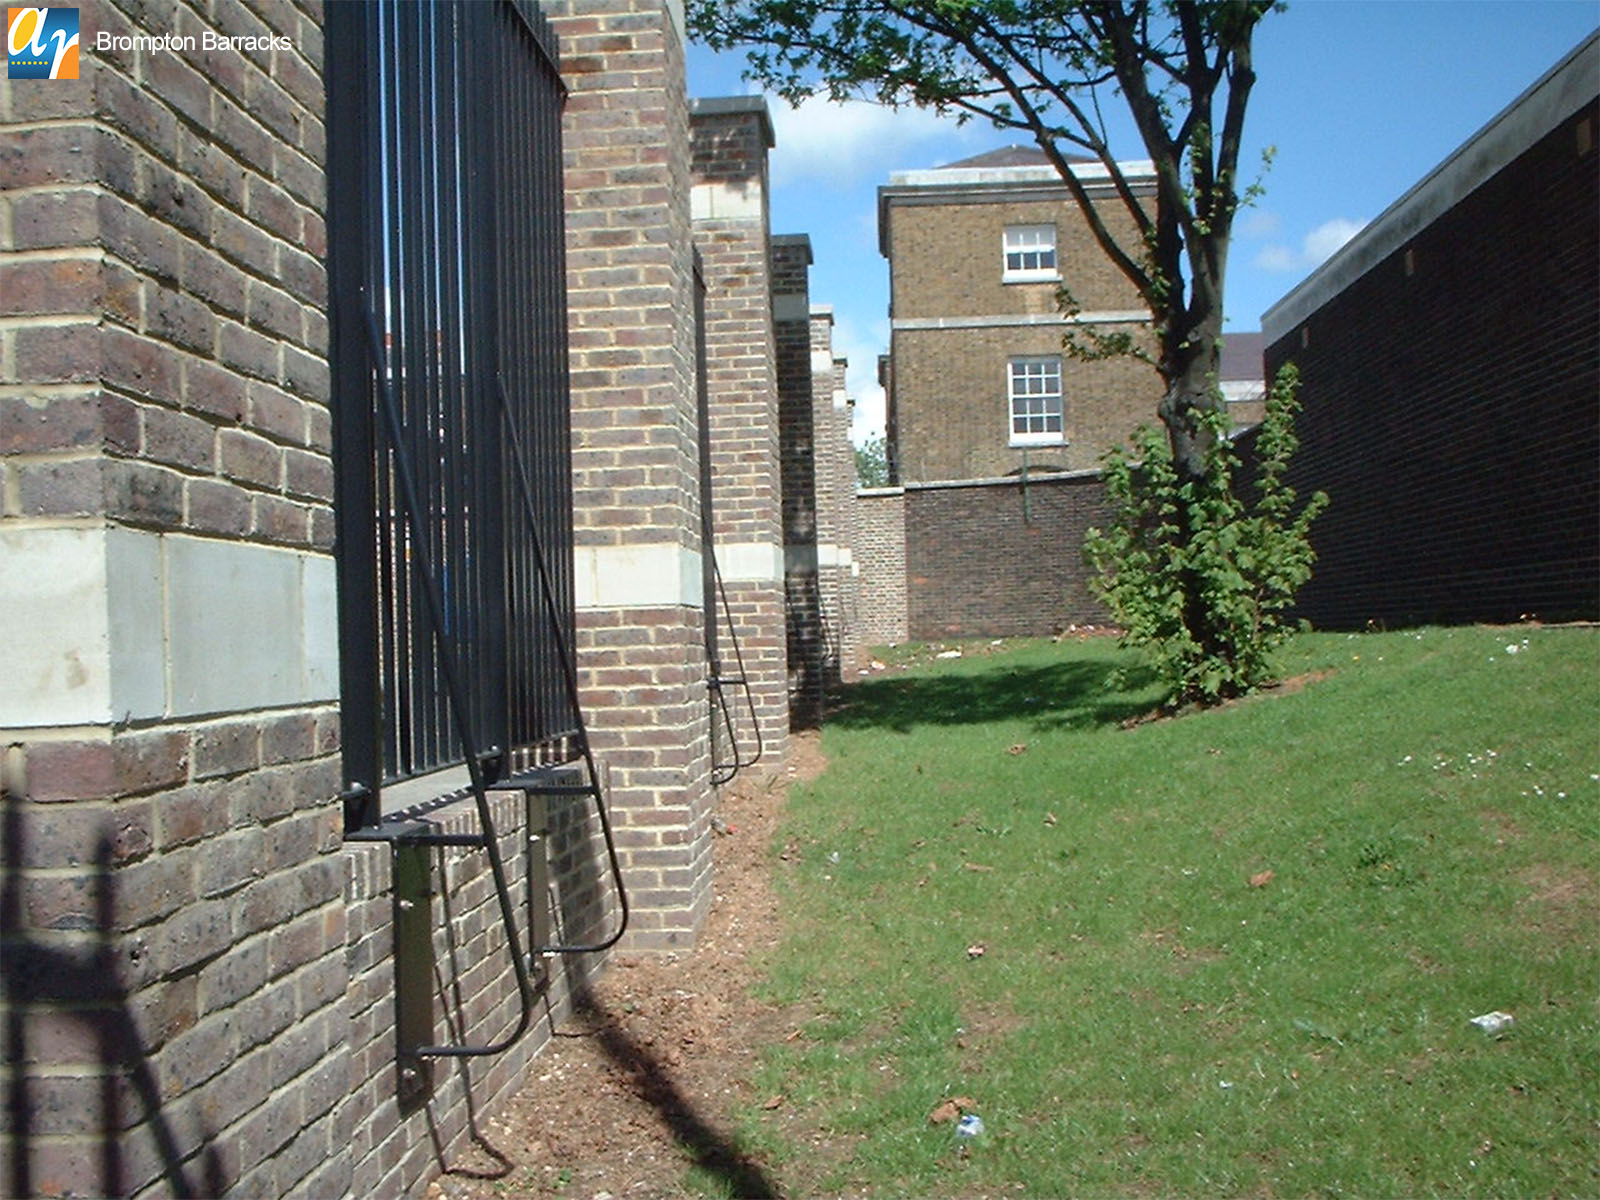 Brompton Barracks security railings